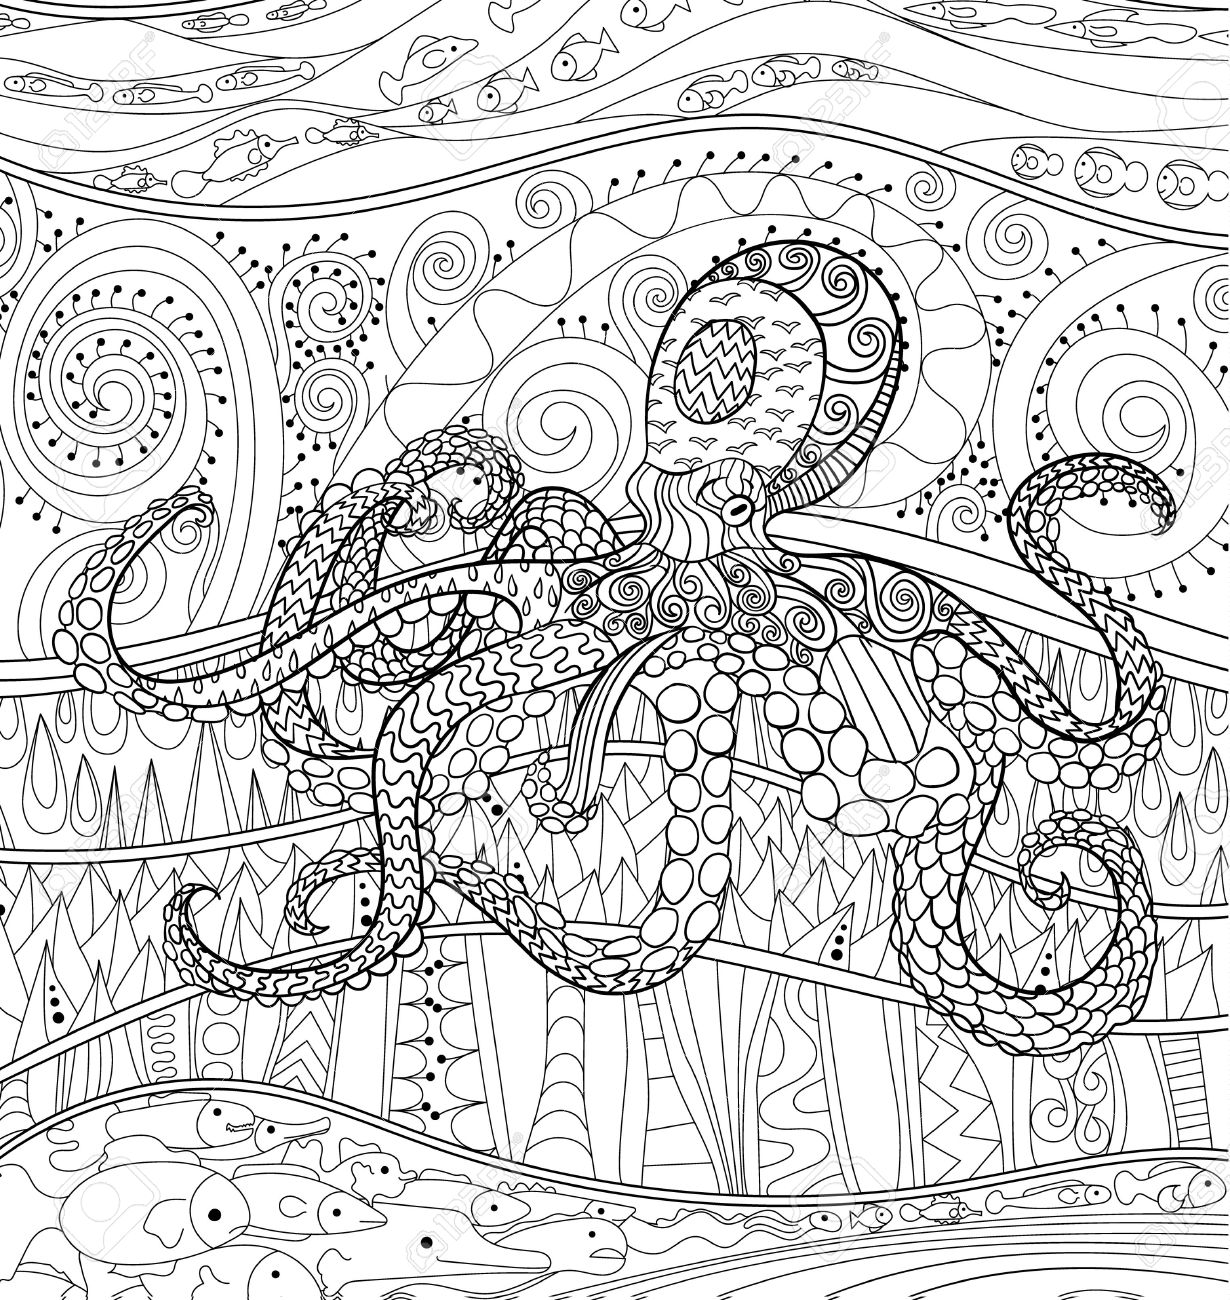 Adult antistress coloring page black white sea animal for art